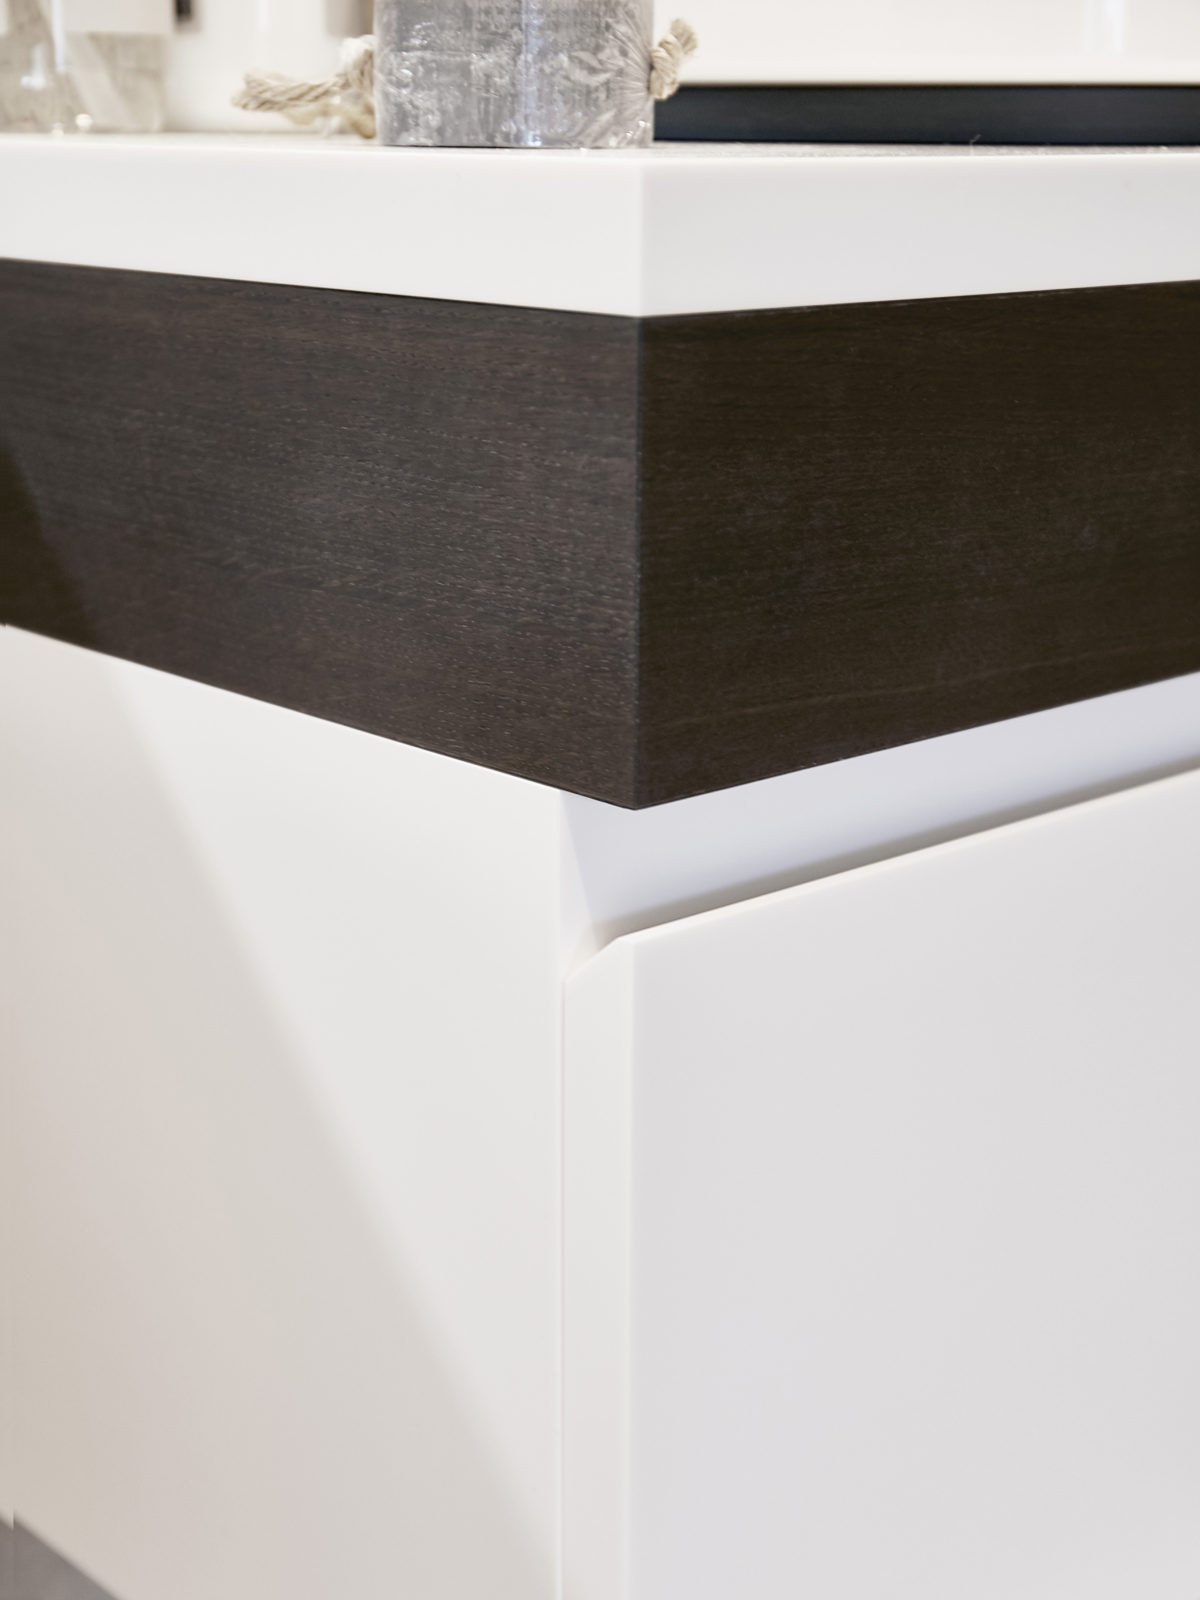 Corian handleless vanity unit with fumed oak strip detail